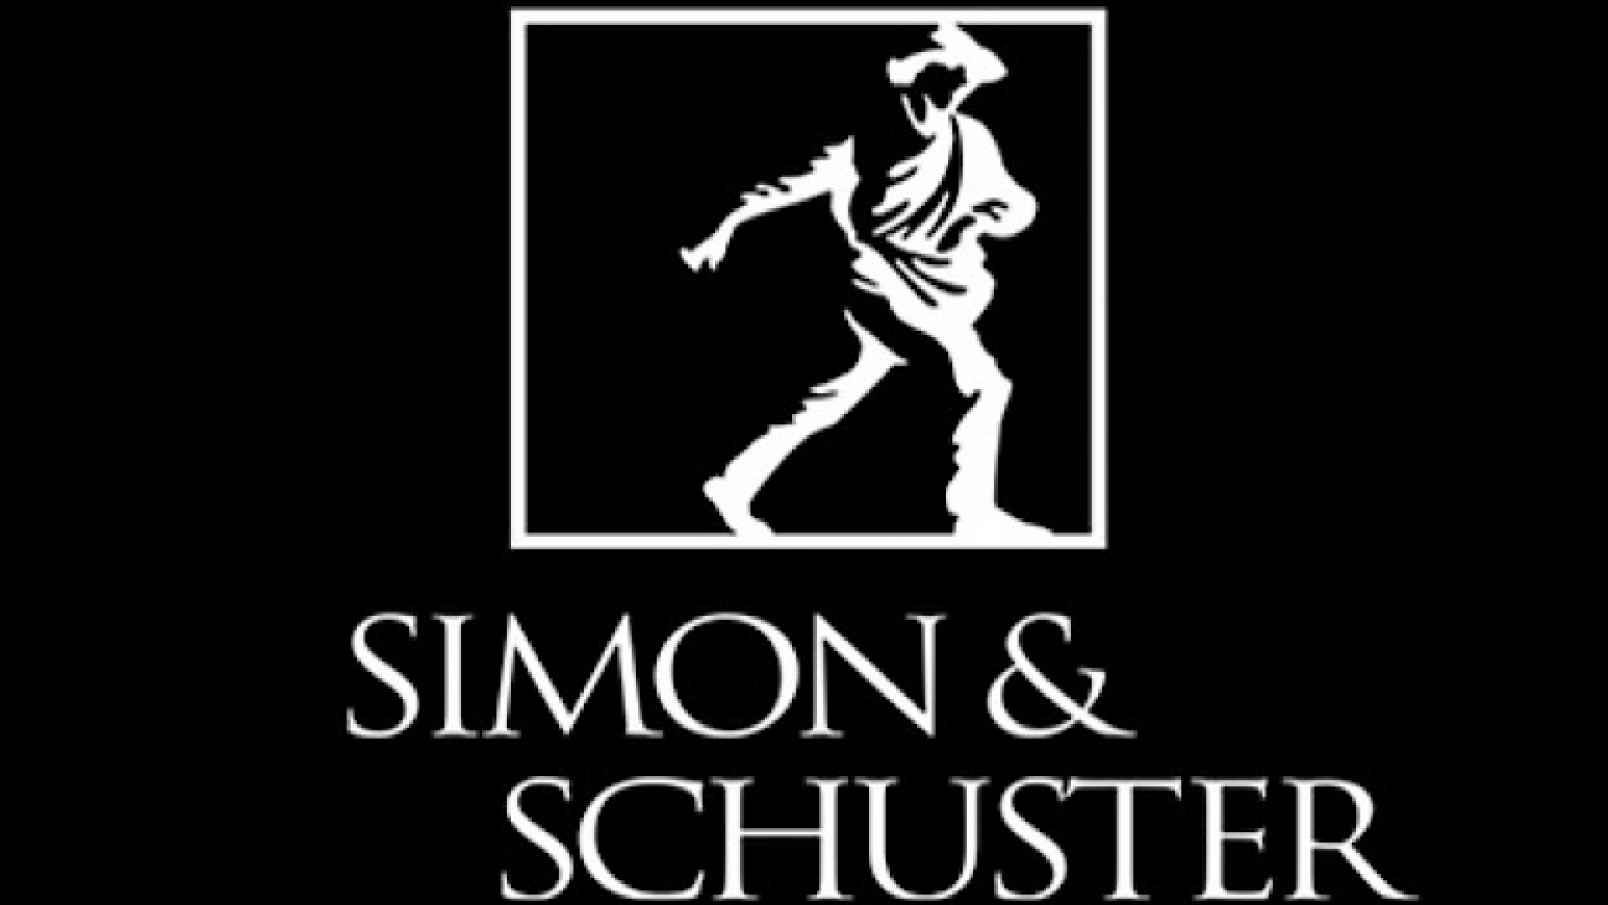 Fascist Simon & Schuster Employees Demand Publisher Drop Books They Disagree With - Frontpagemag